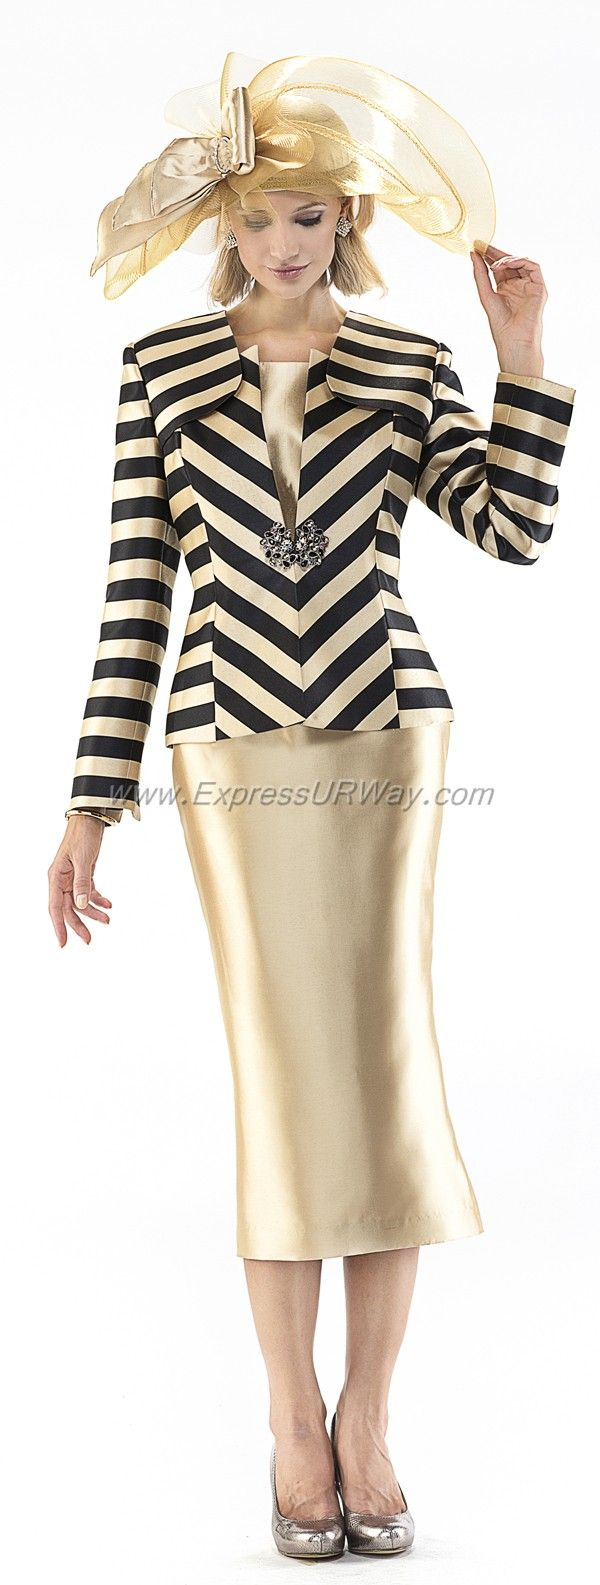 Moshita Womens Church Suits - Spring 2014 - www.ExpressURWay.com - Church Suits…